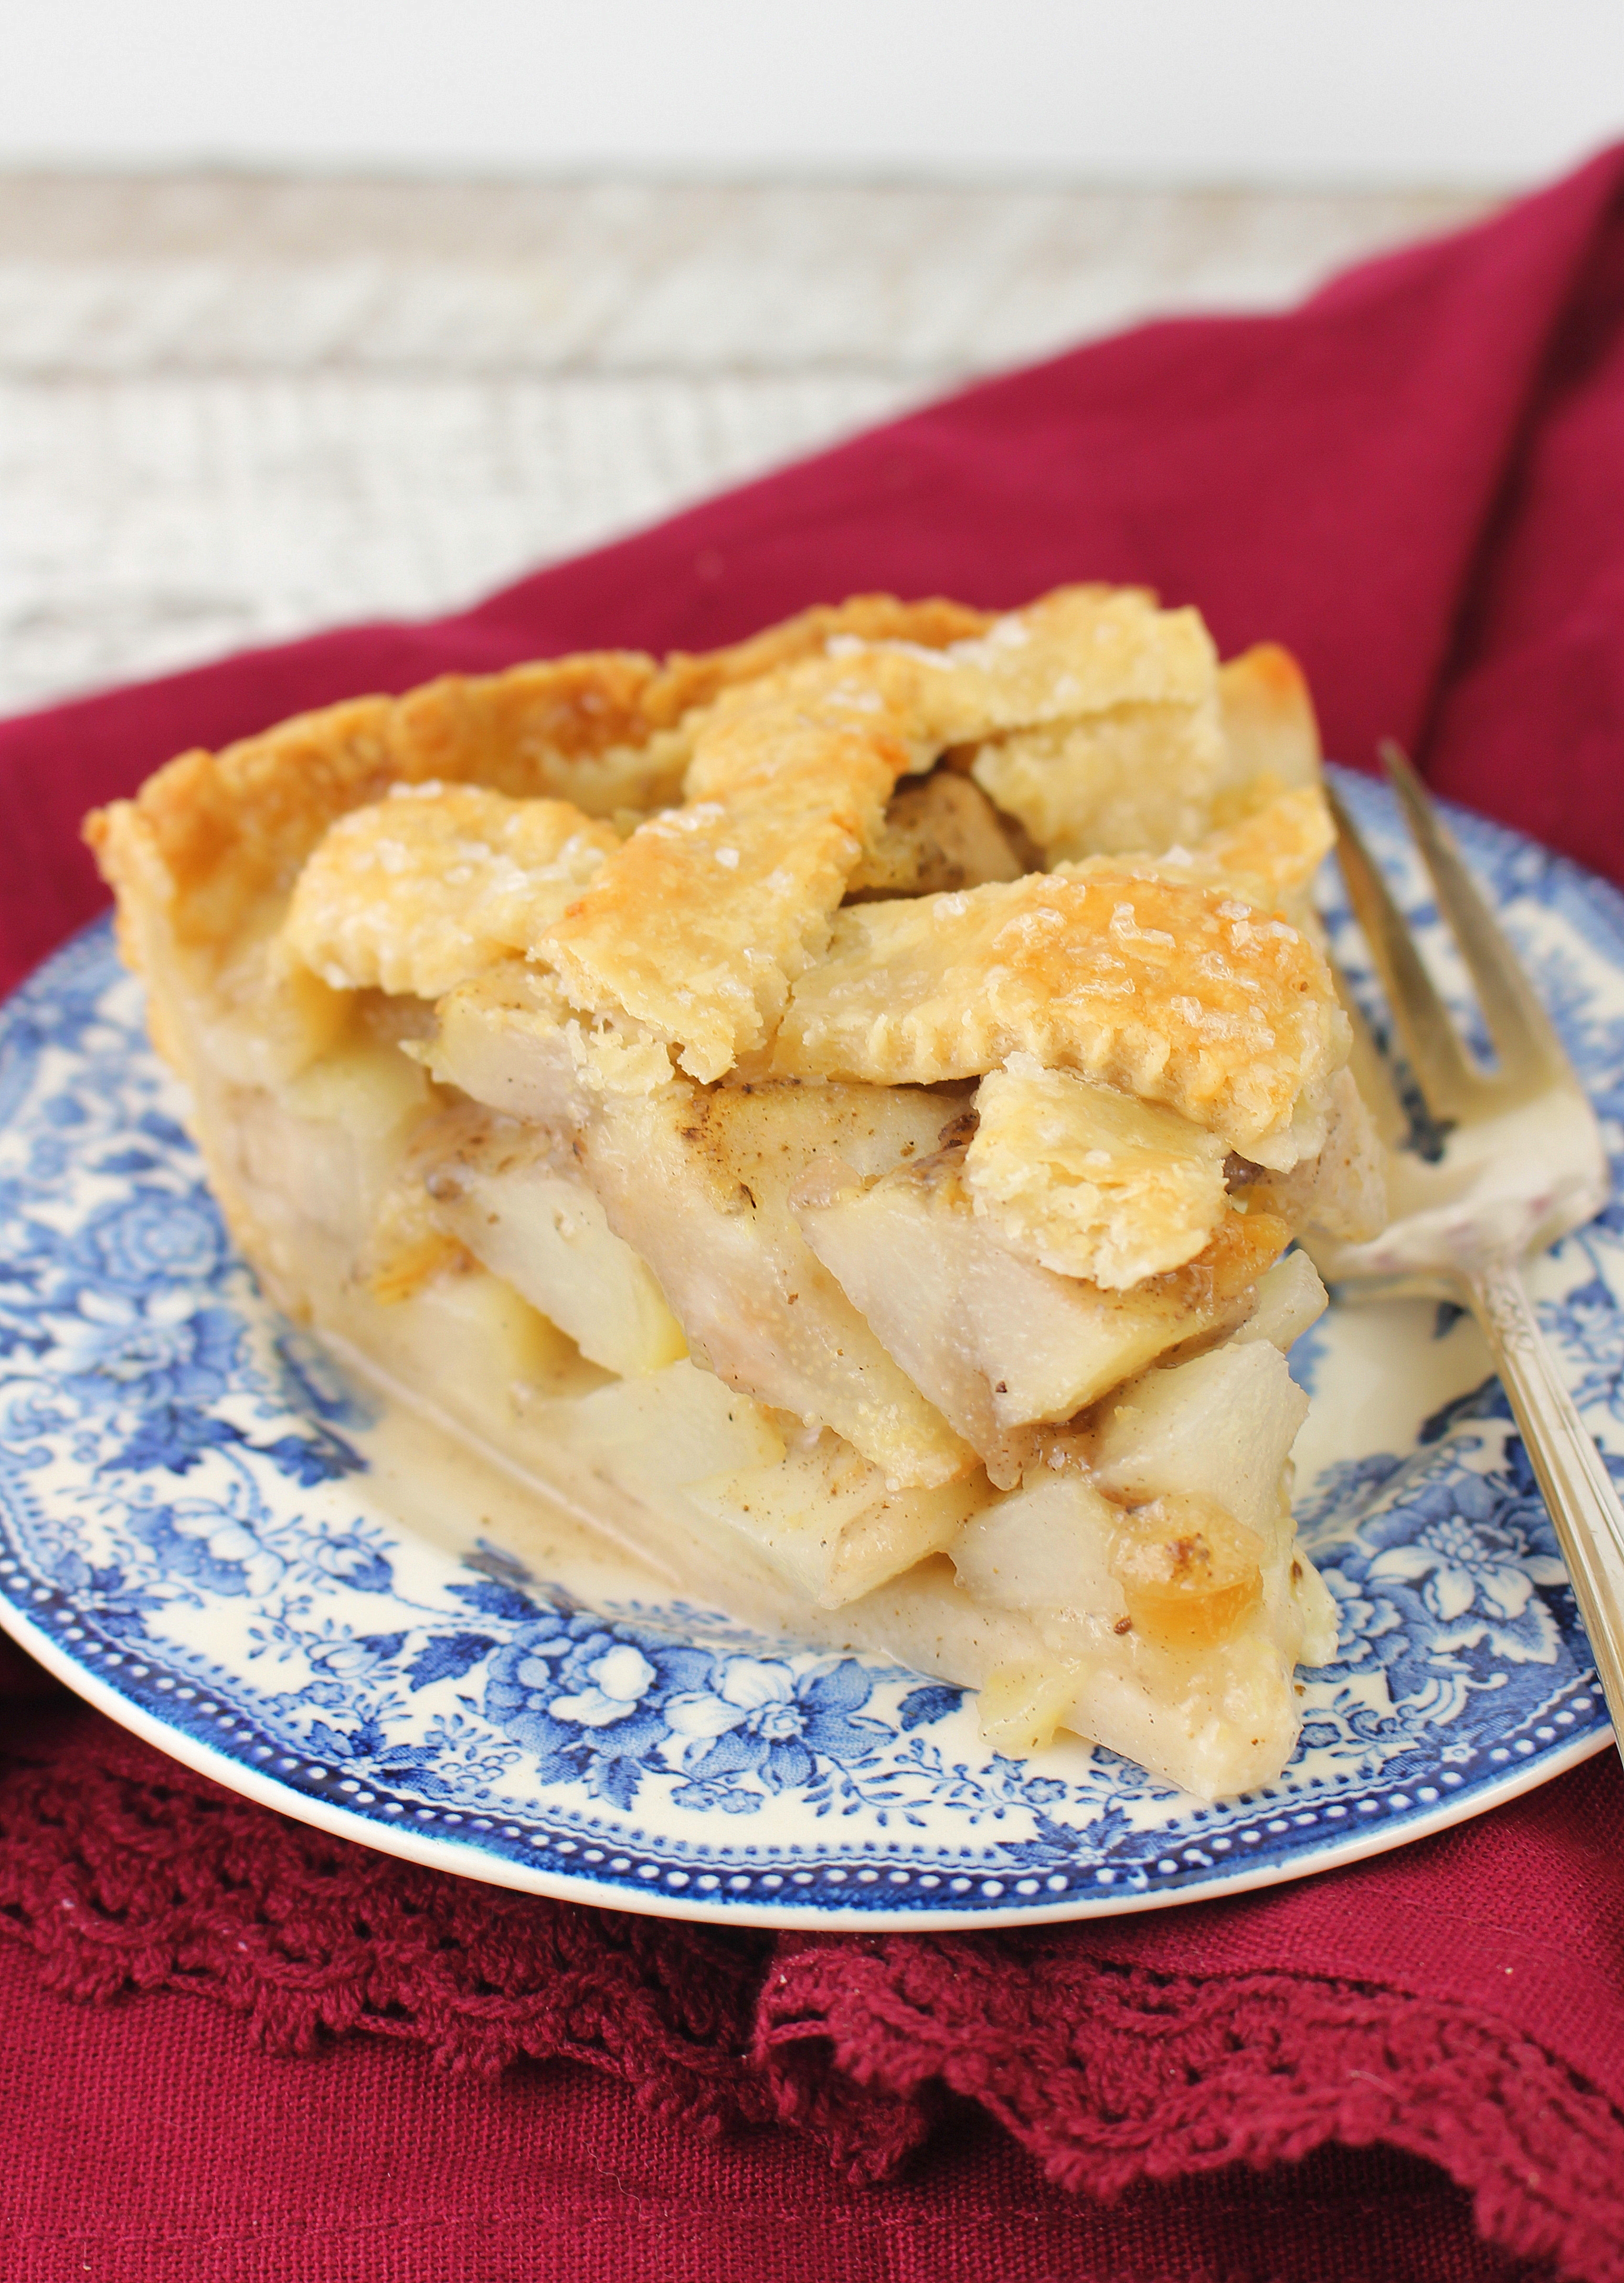 Gingered Pear Pie #BakingBloggers